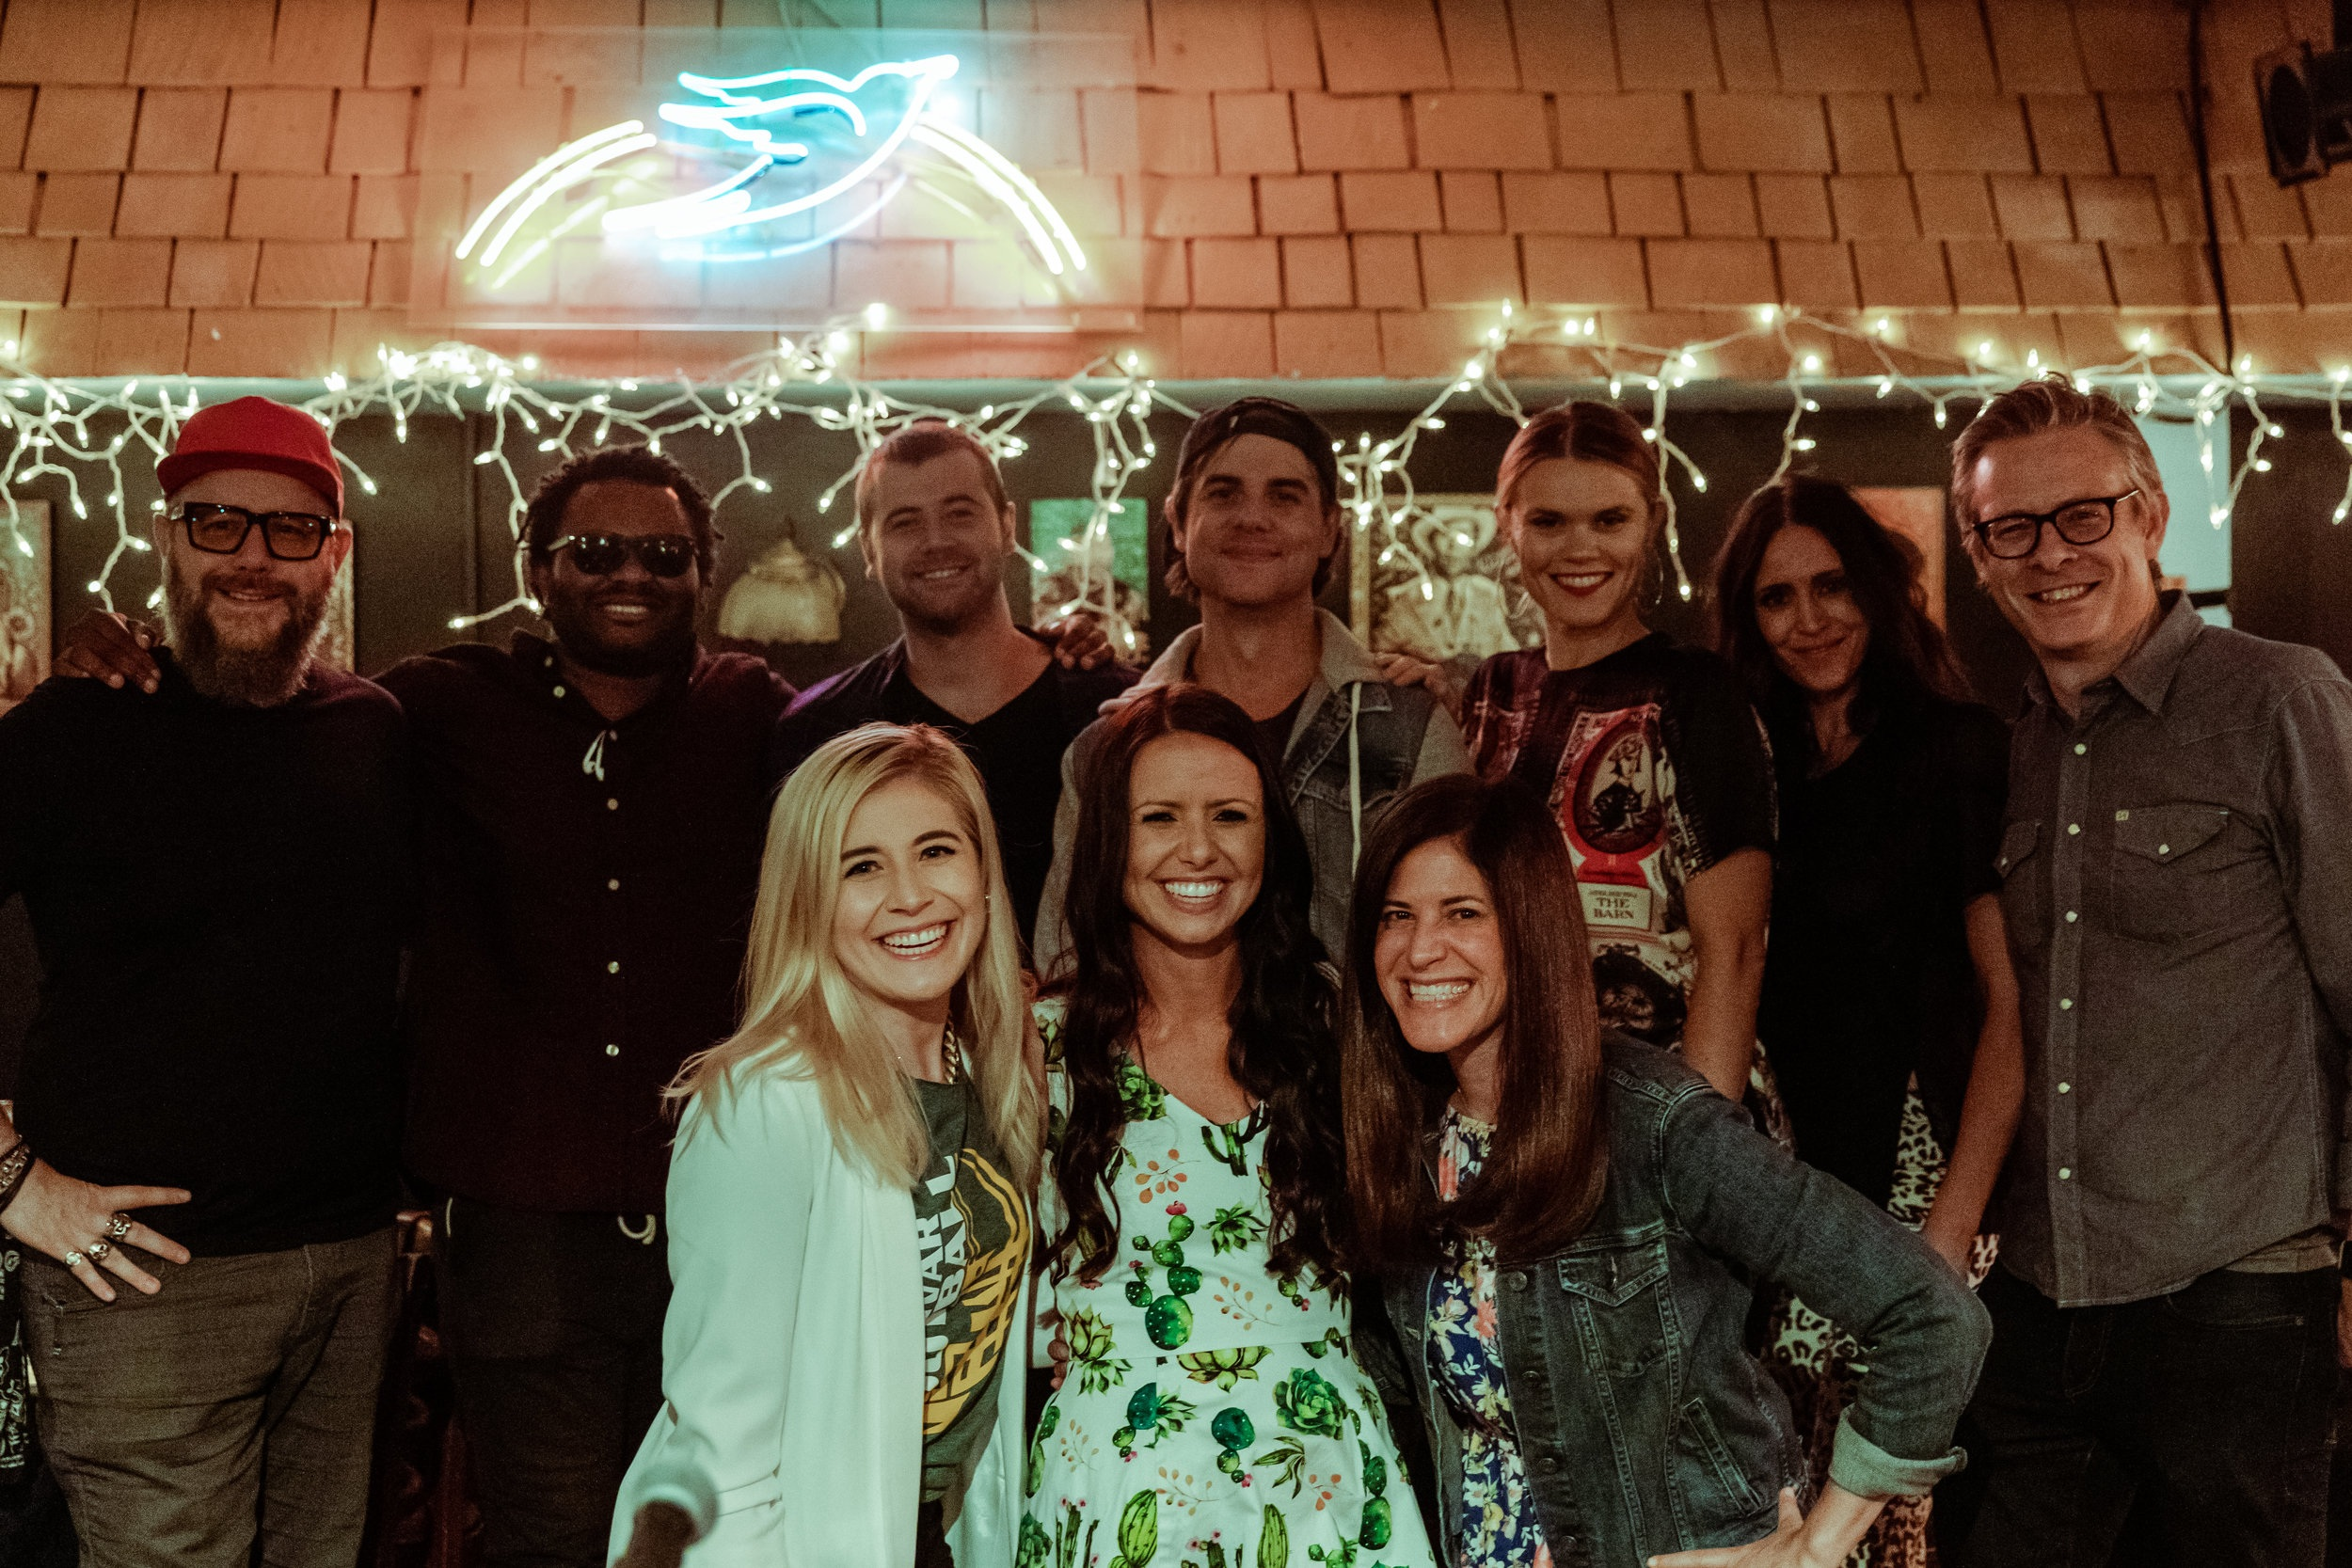 F. Reid Shippen, Blessing Offor, Jimmy Robbins, Ross Copperman, Nicolle Galyon, Kelleigh Bannen, Henry Donahue (Save The Music), Alena Moran, Rachel Malone, Danielle Zalaznick (Save the Music).